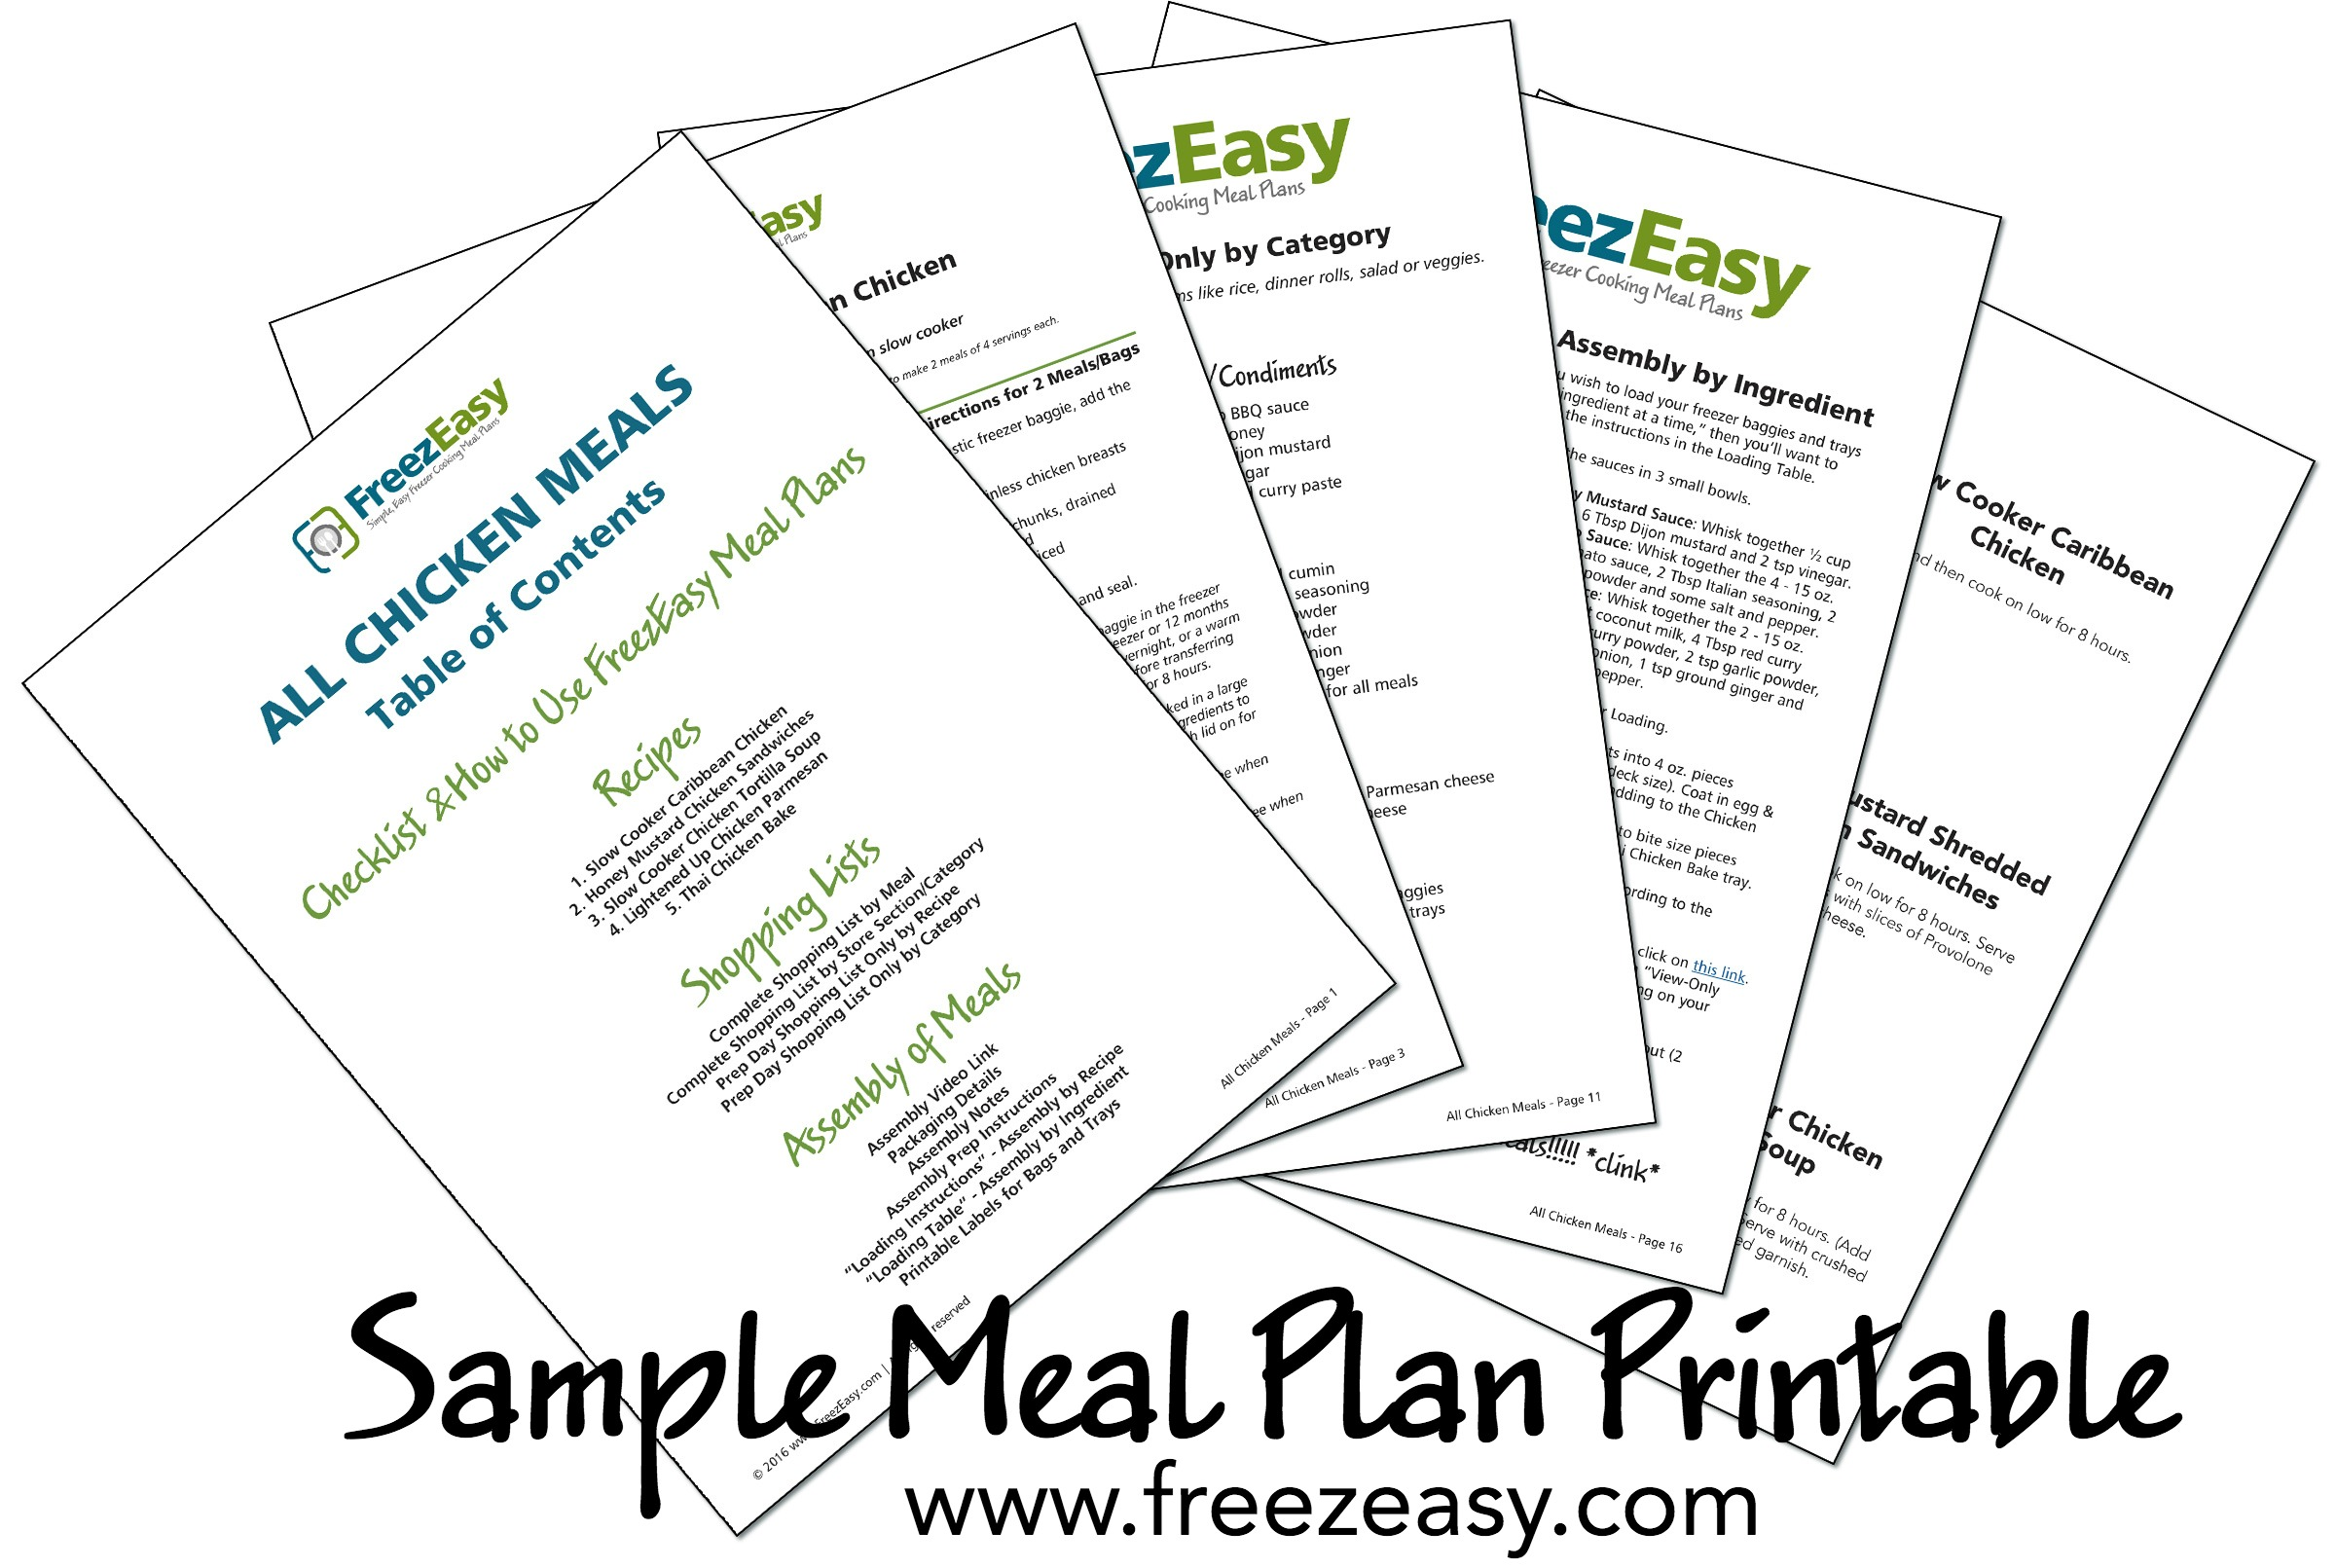 FreezEasy Sample Printable Meal Plan